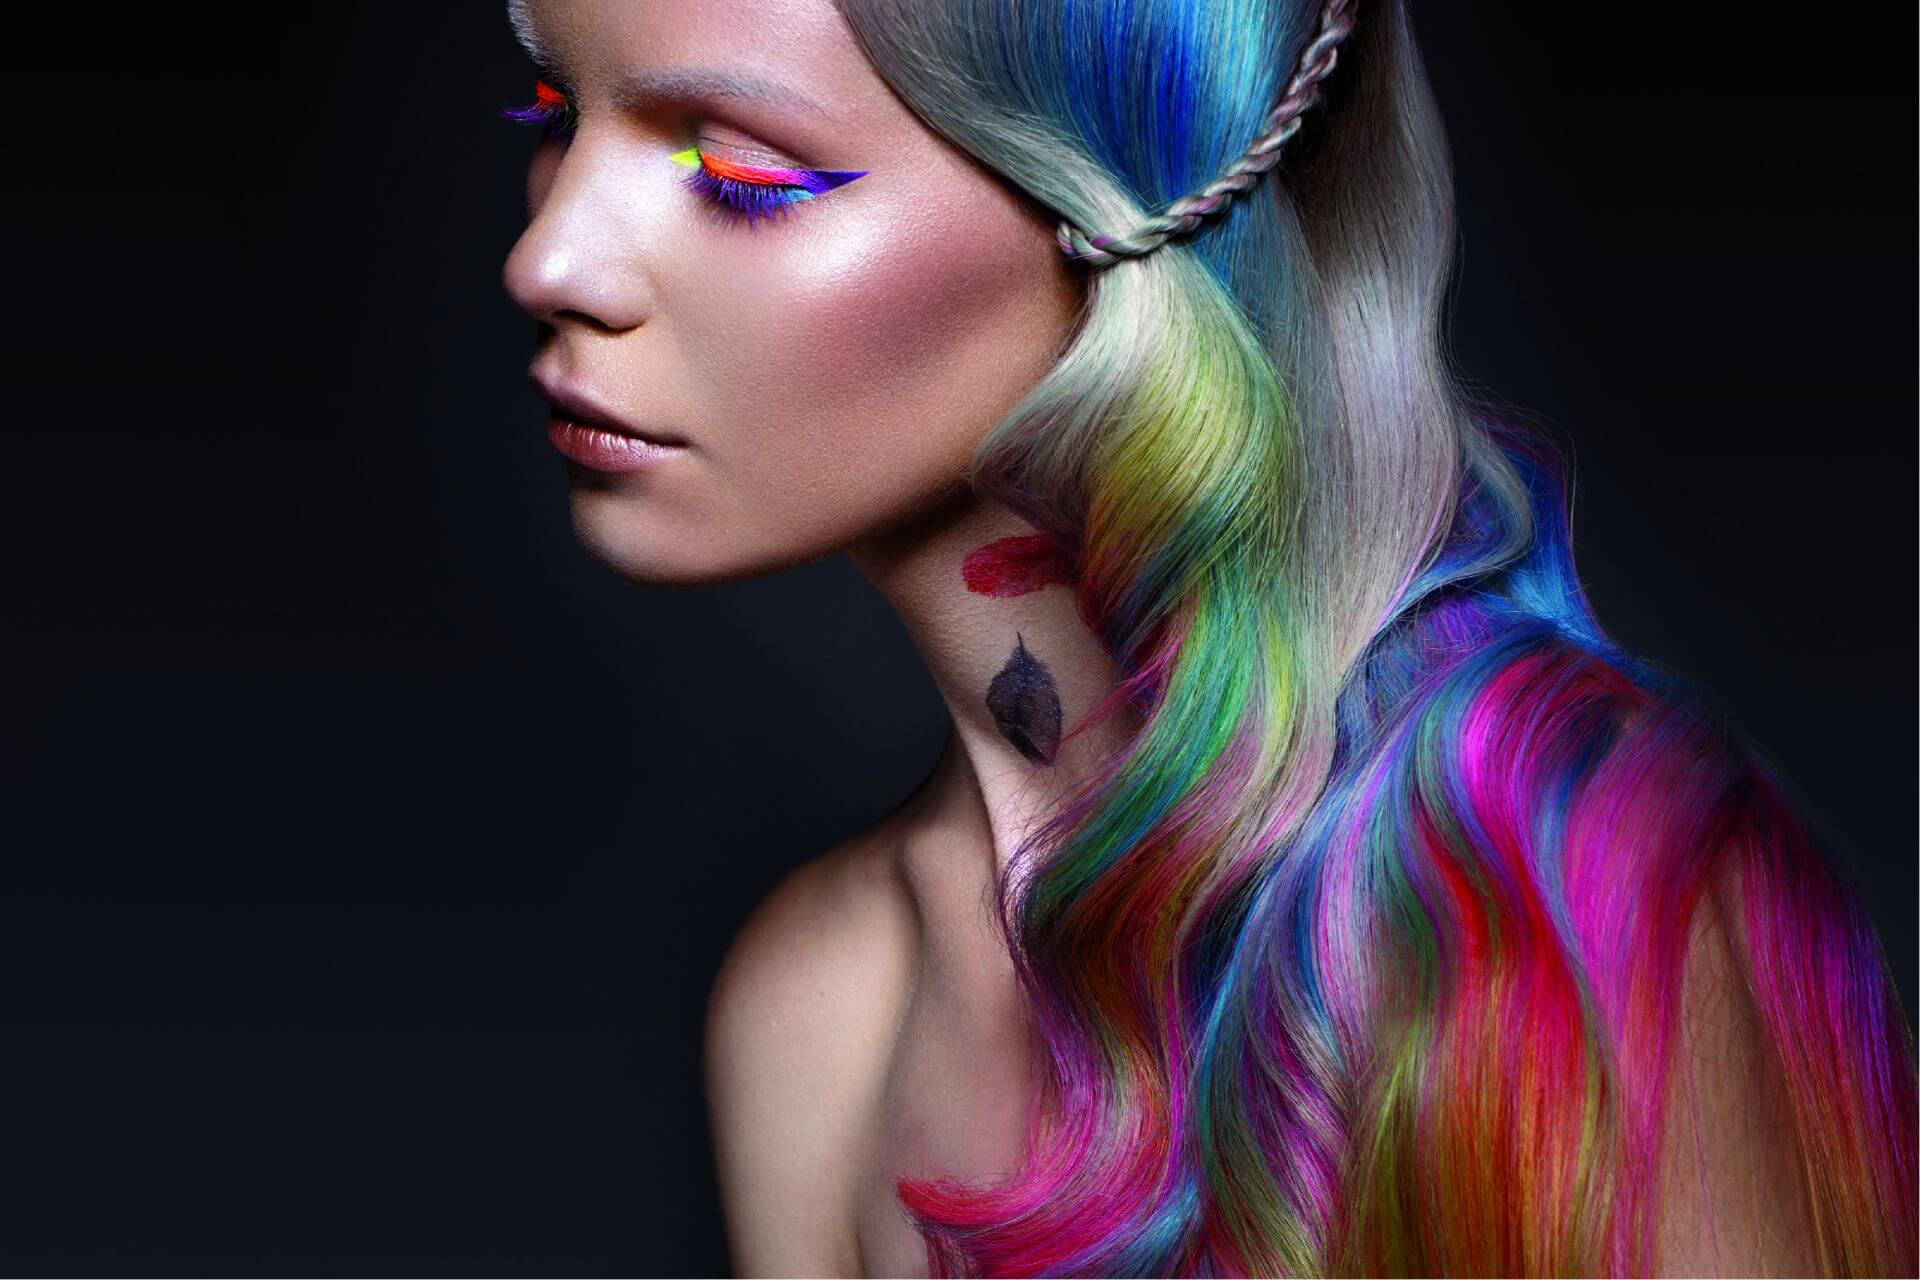 woman colorful hair